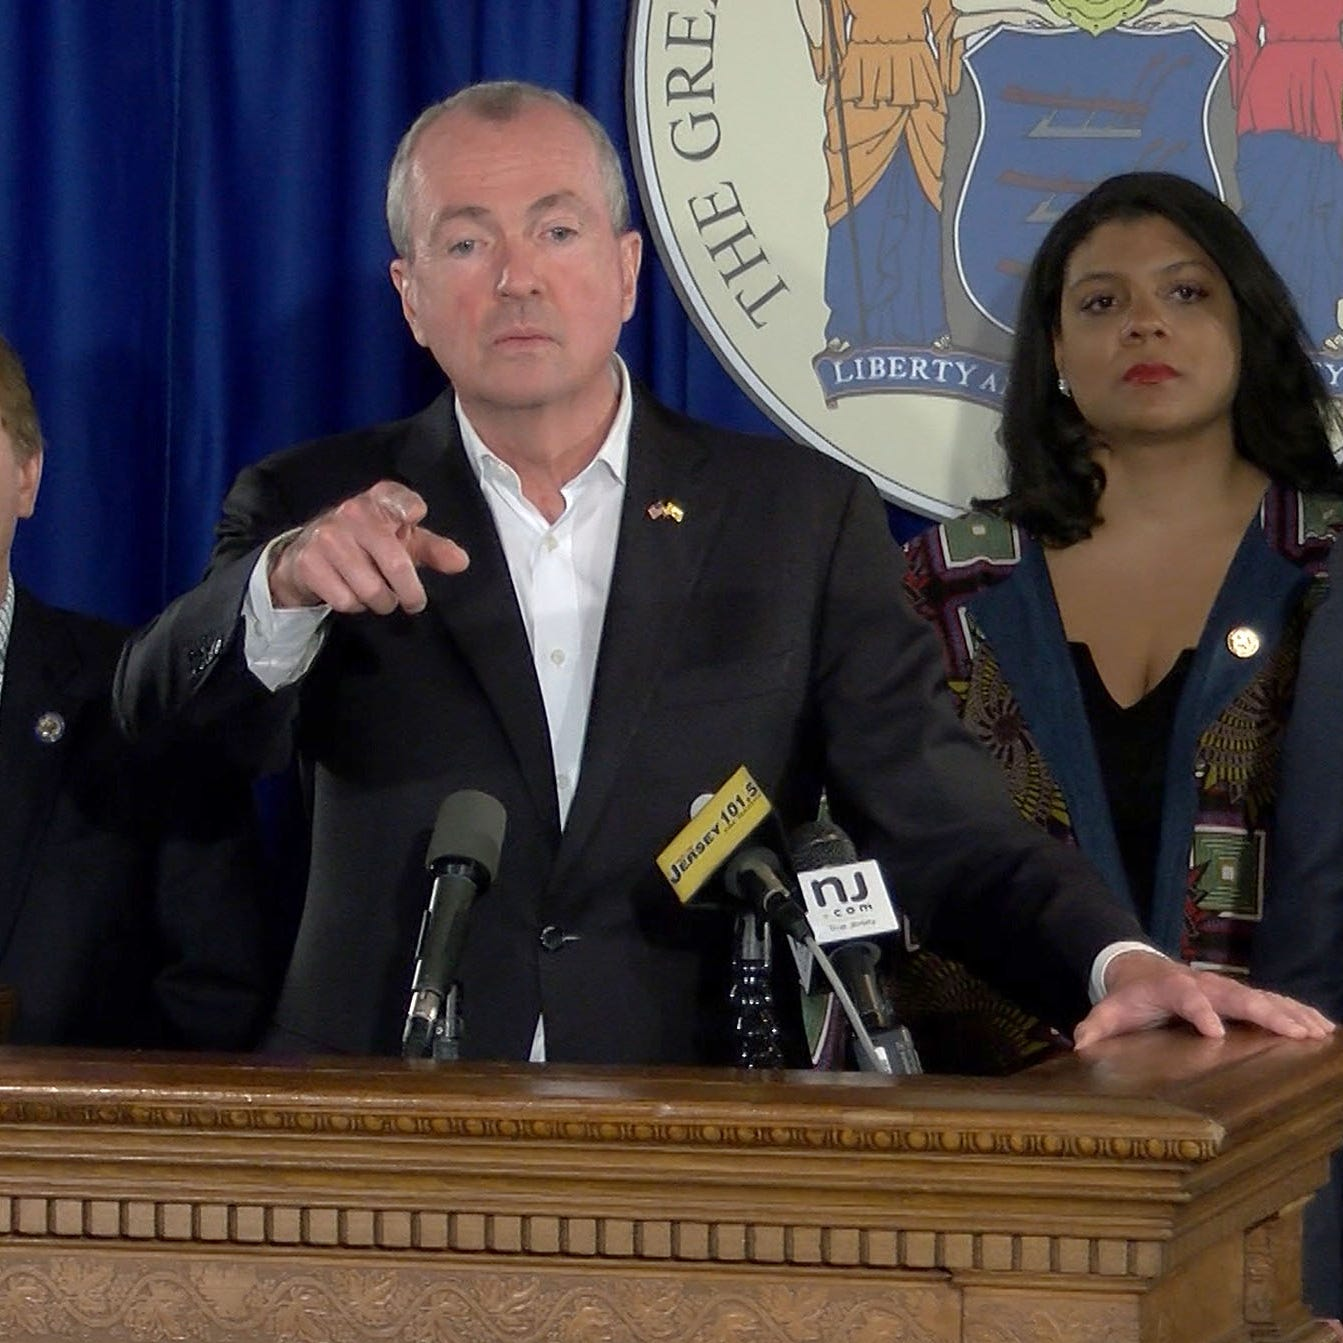 NJ marijuana legalization: Watch Gov. Phil Murphy react; says 'we are not defeated'